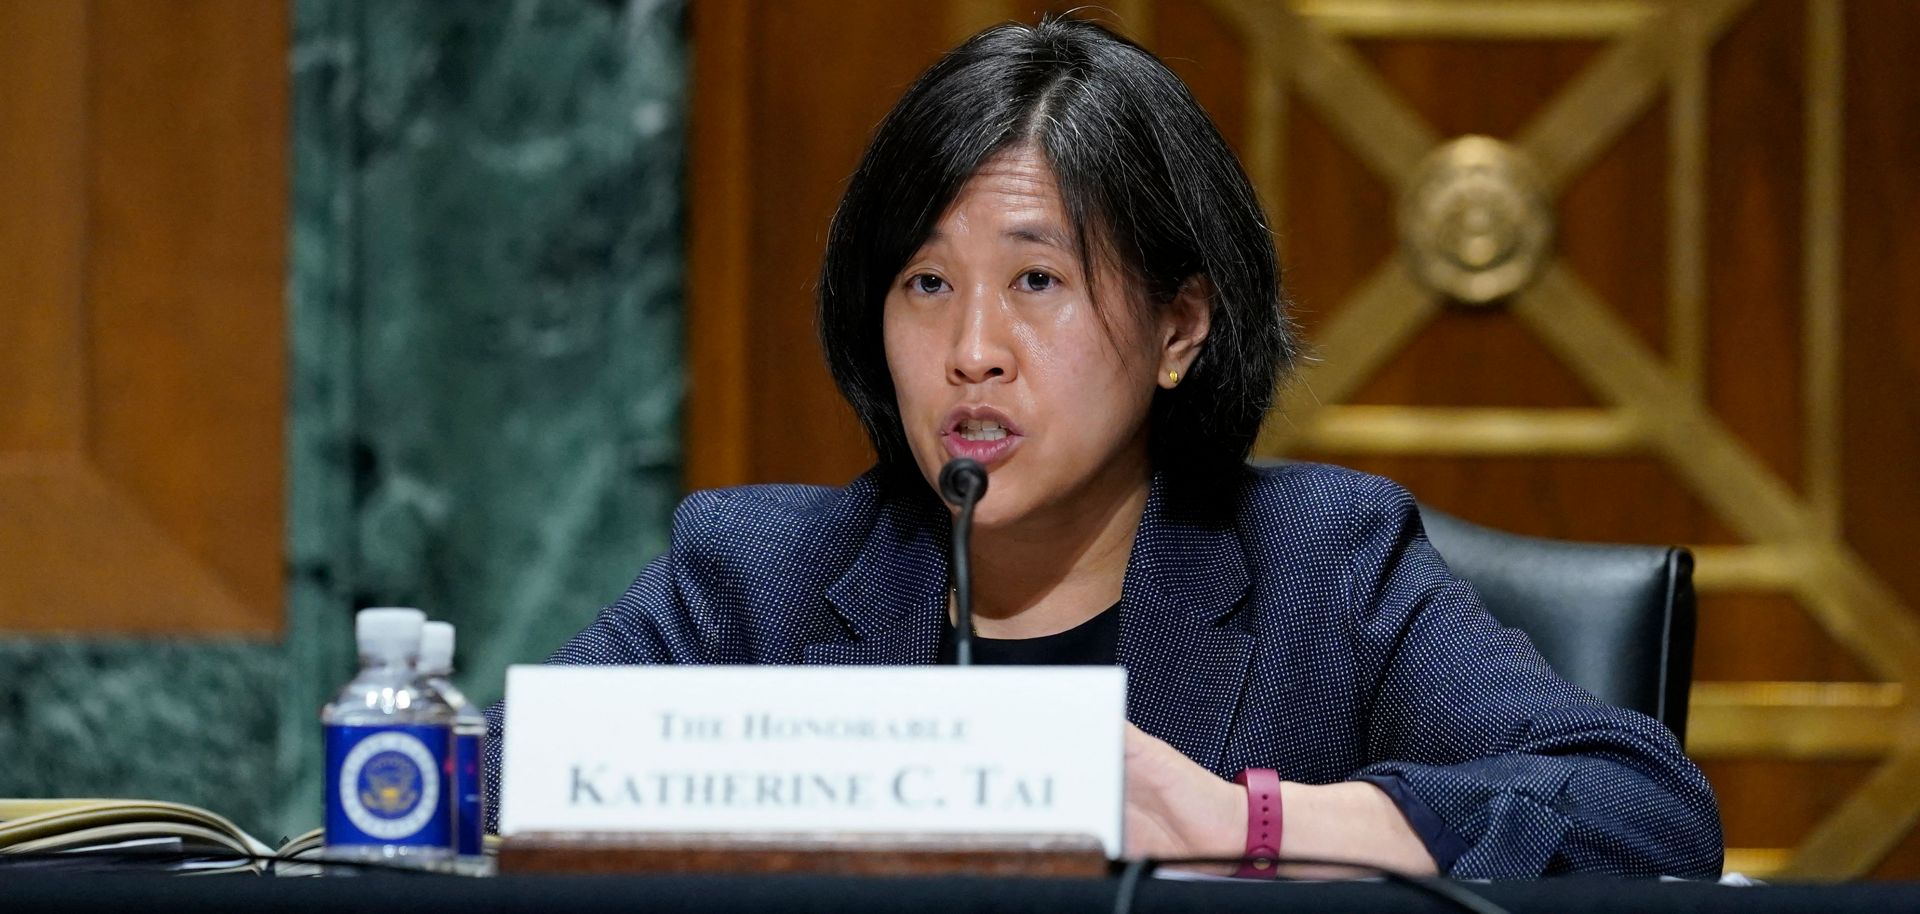 U.S. Trade Representative Katherine Tai fields questions about the White House's trade policy agenda from members of the Senate Finance Committee on May 12, 2021.